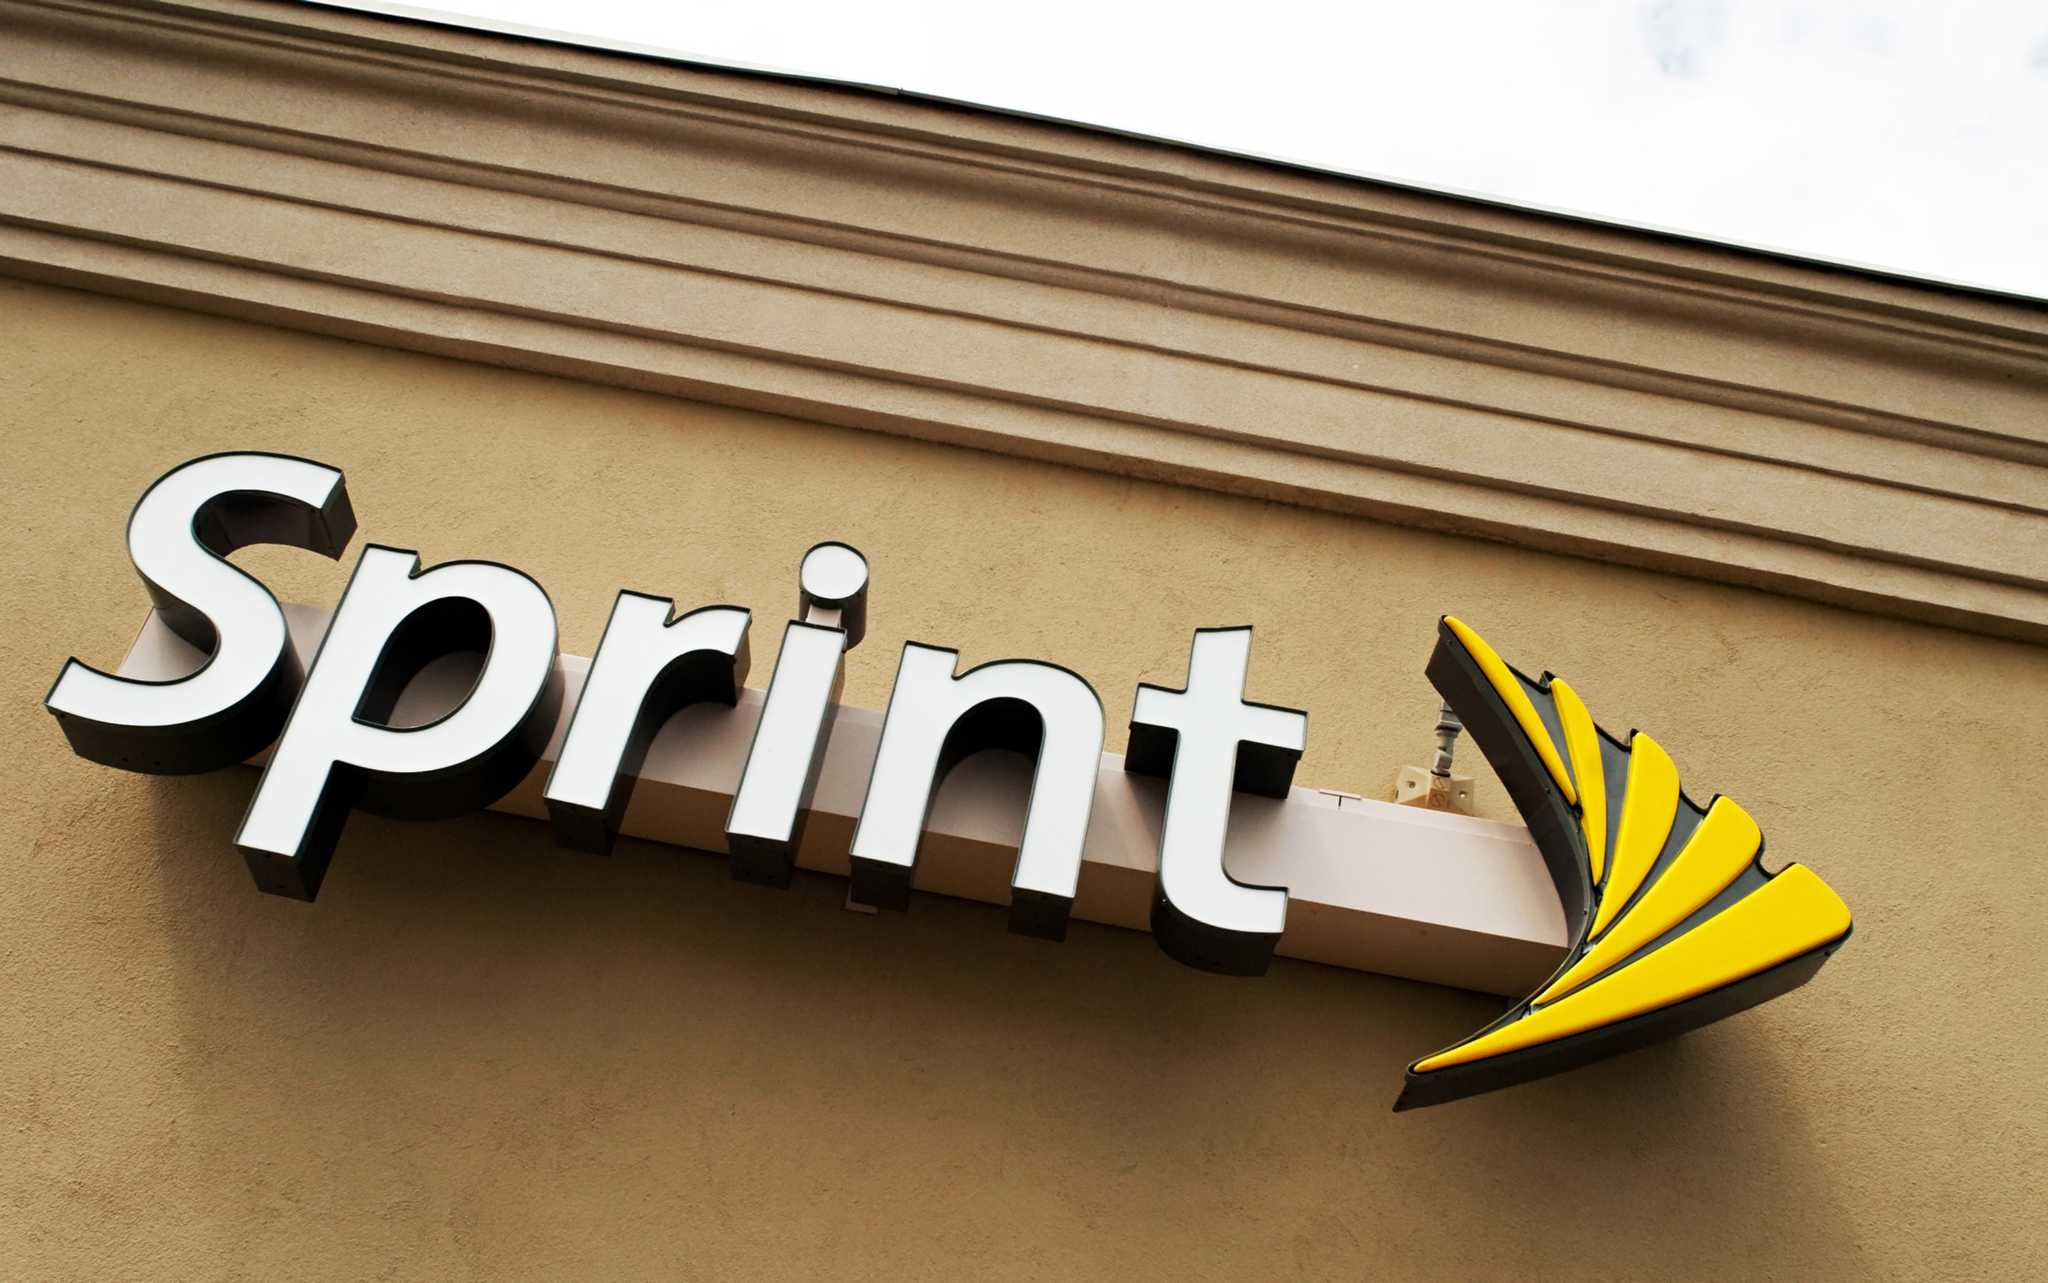 Sprint to bring 5G mobile speeds to Houston this year